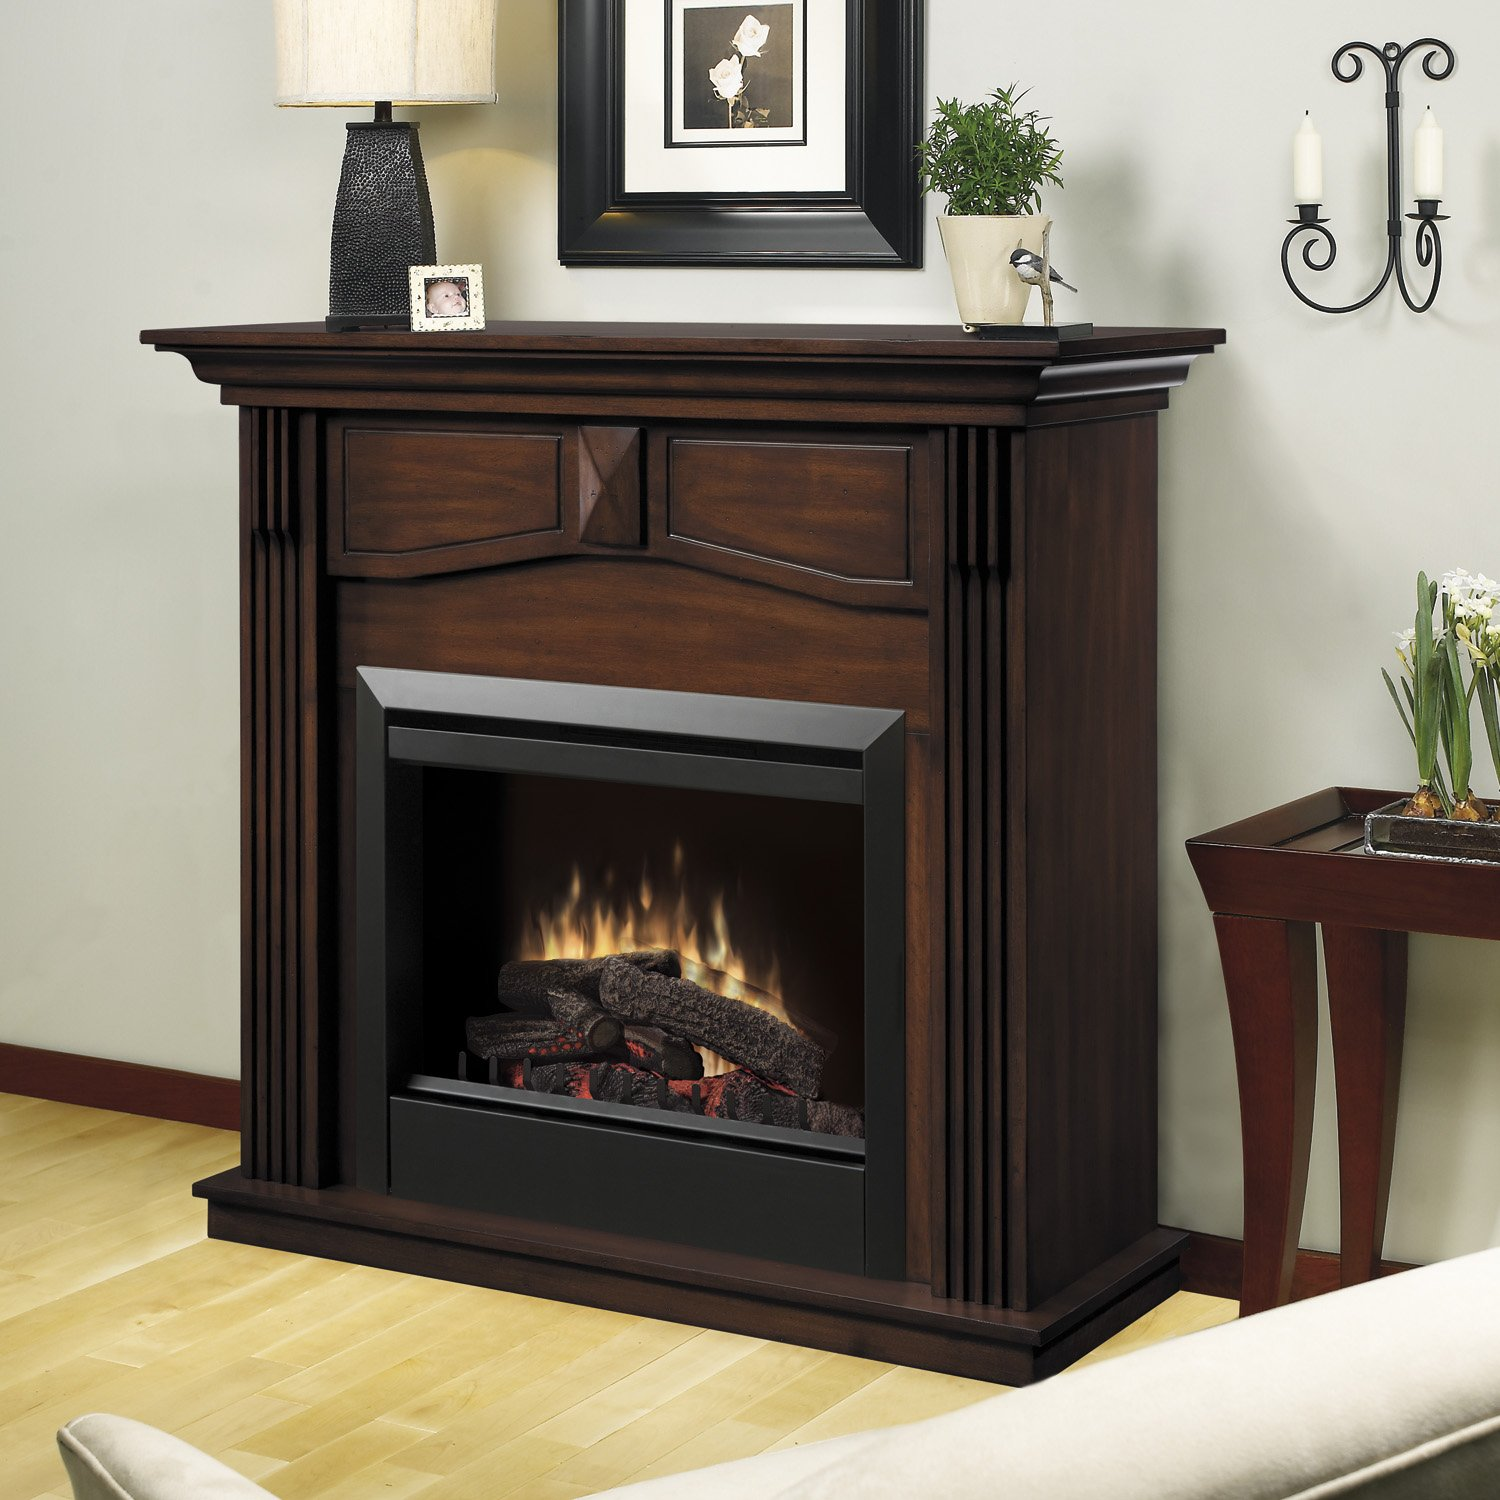 mantel shop dimplex canada online collections store fireplace mantels packages fireplaces